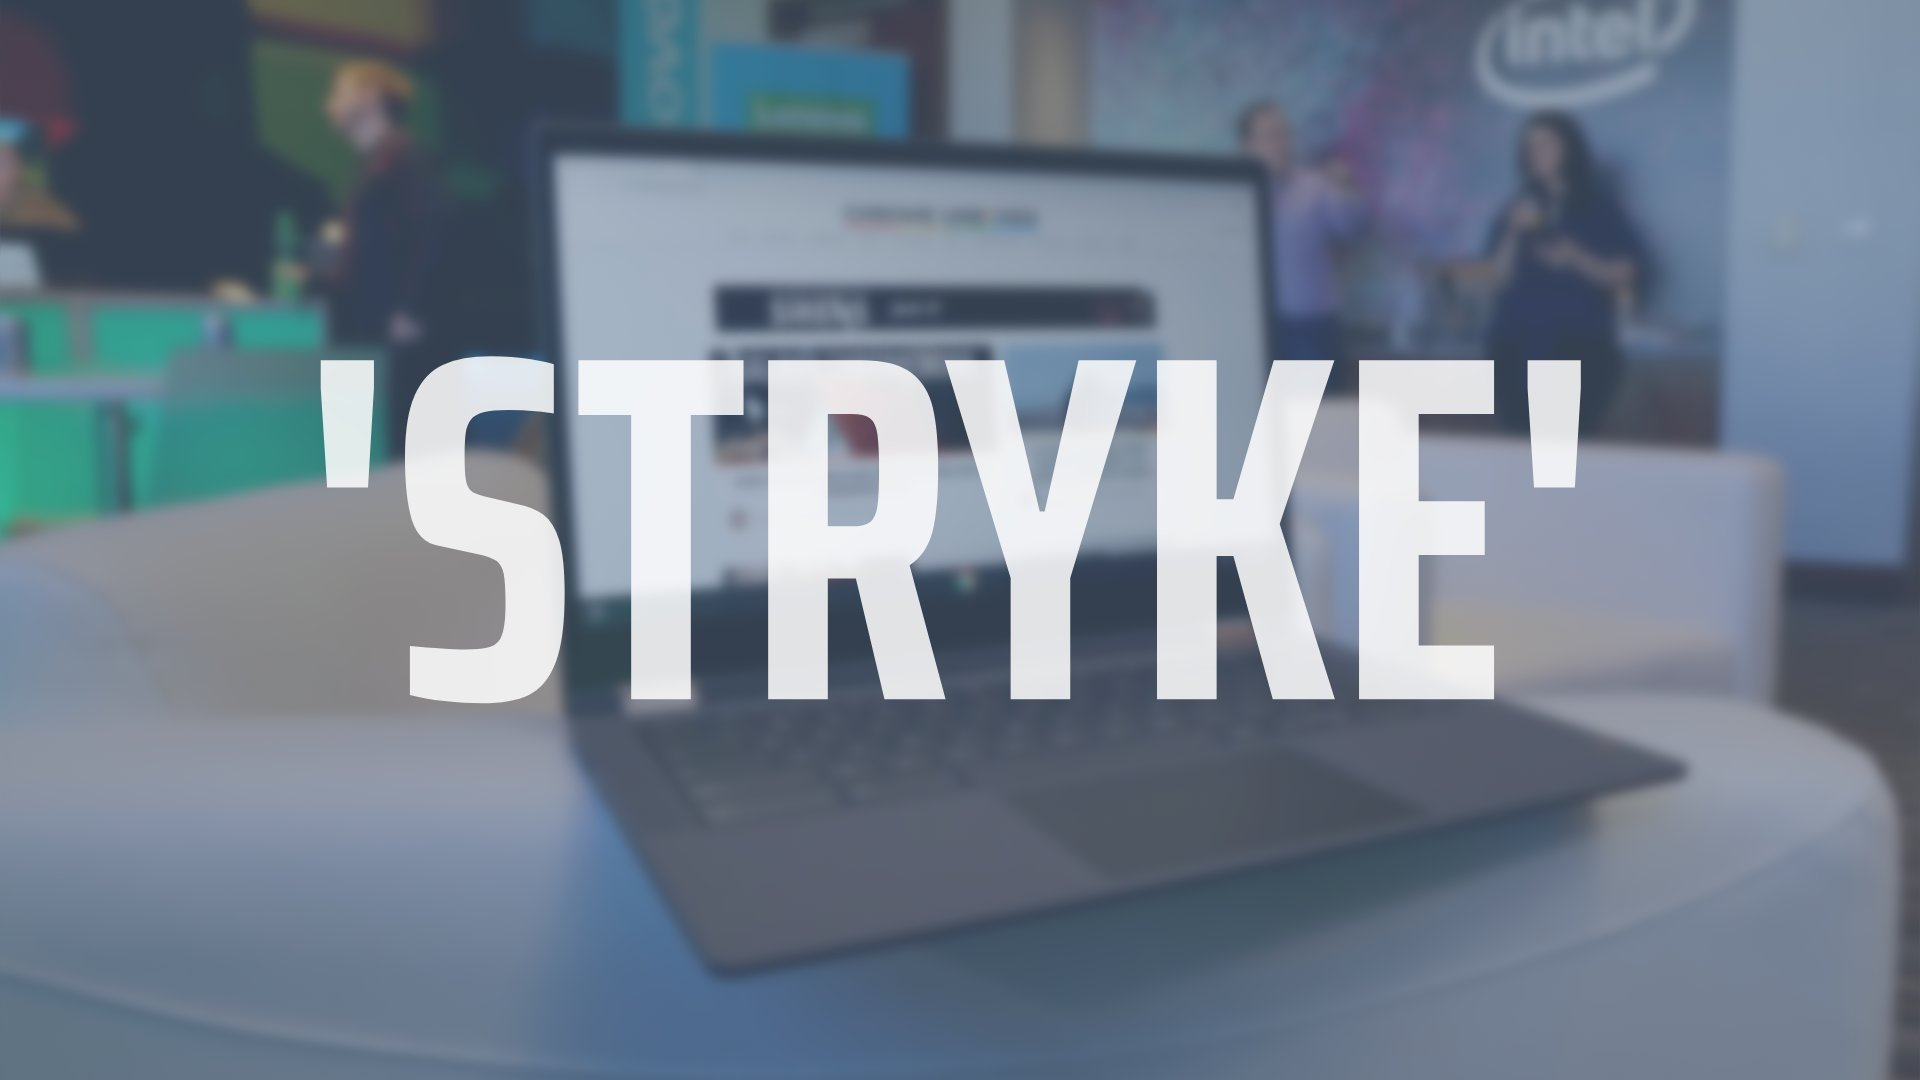 'Stryke' is another 10th-gen Intel Comet Lake Chromebook entering development